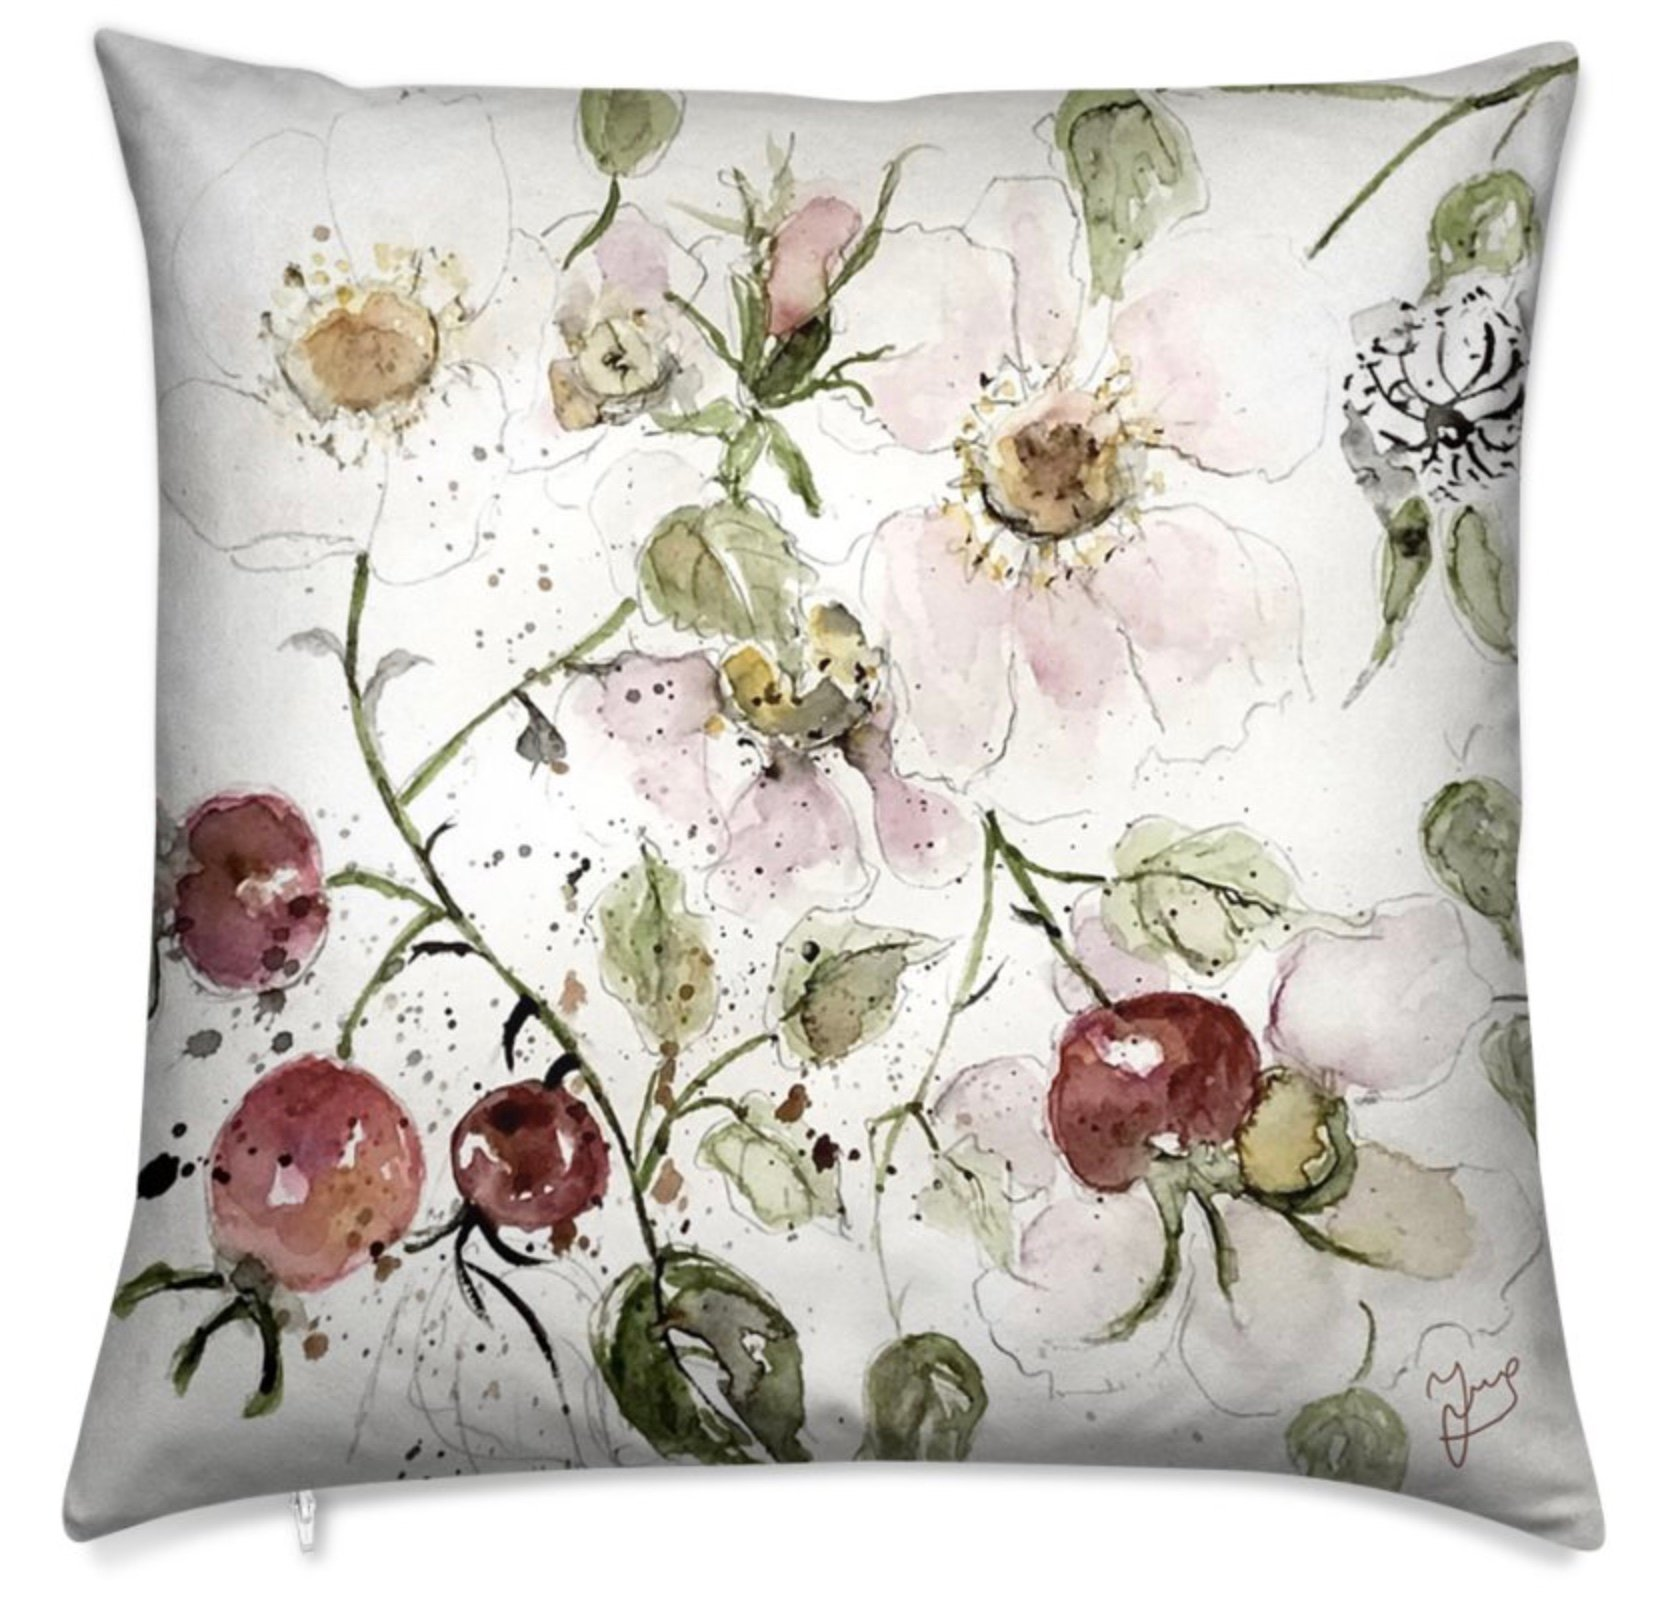 Pillow with wild roses